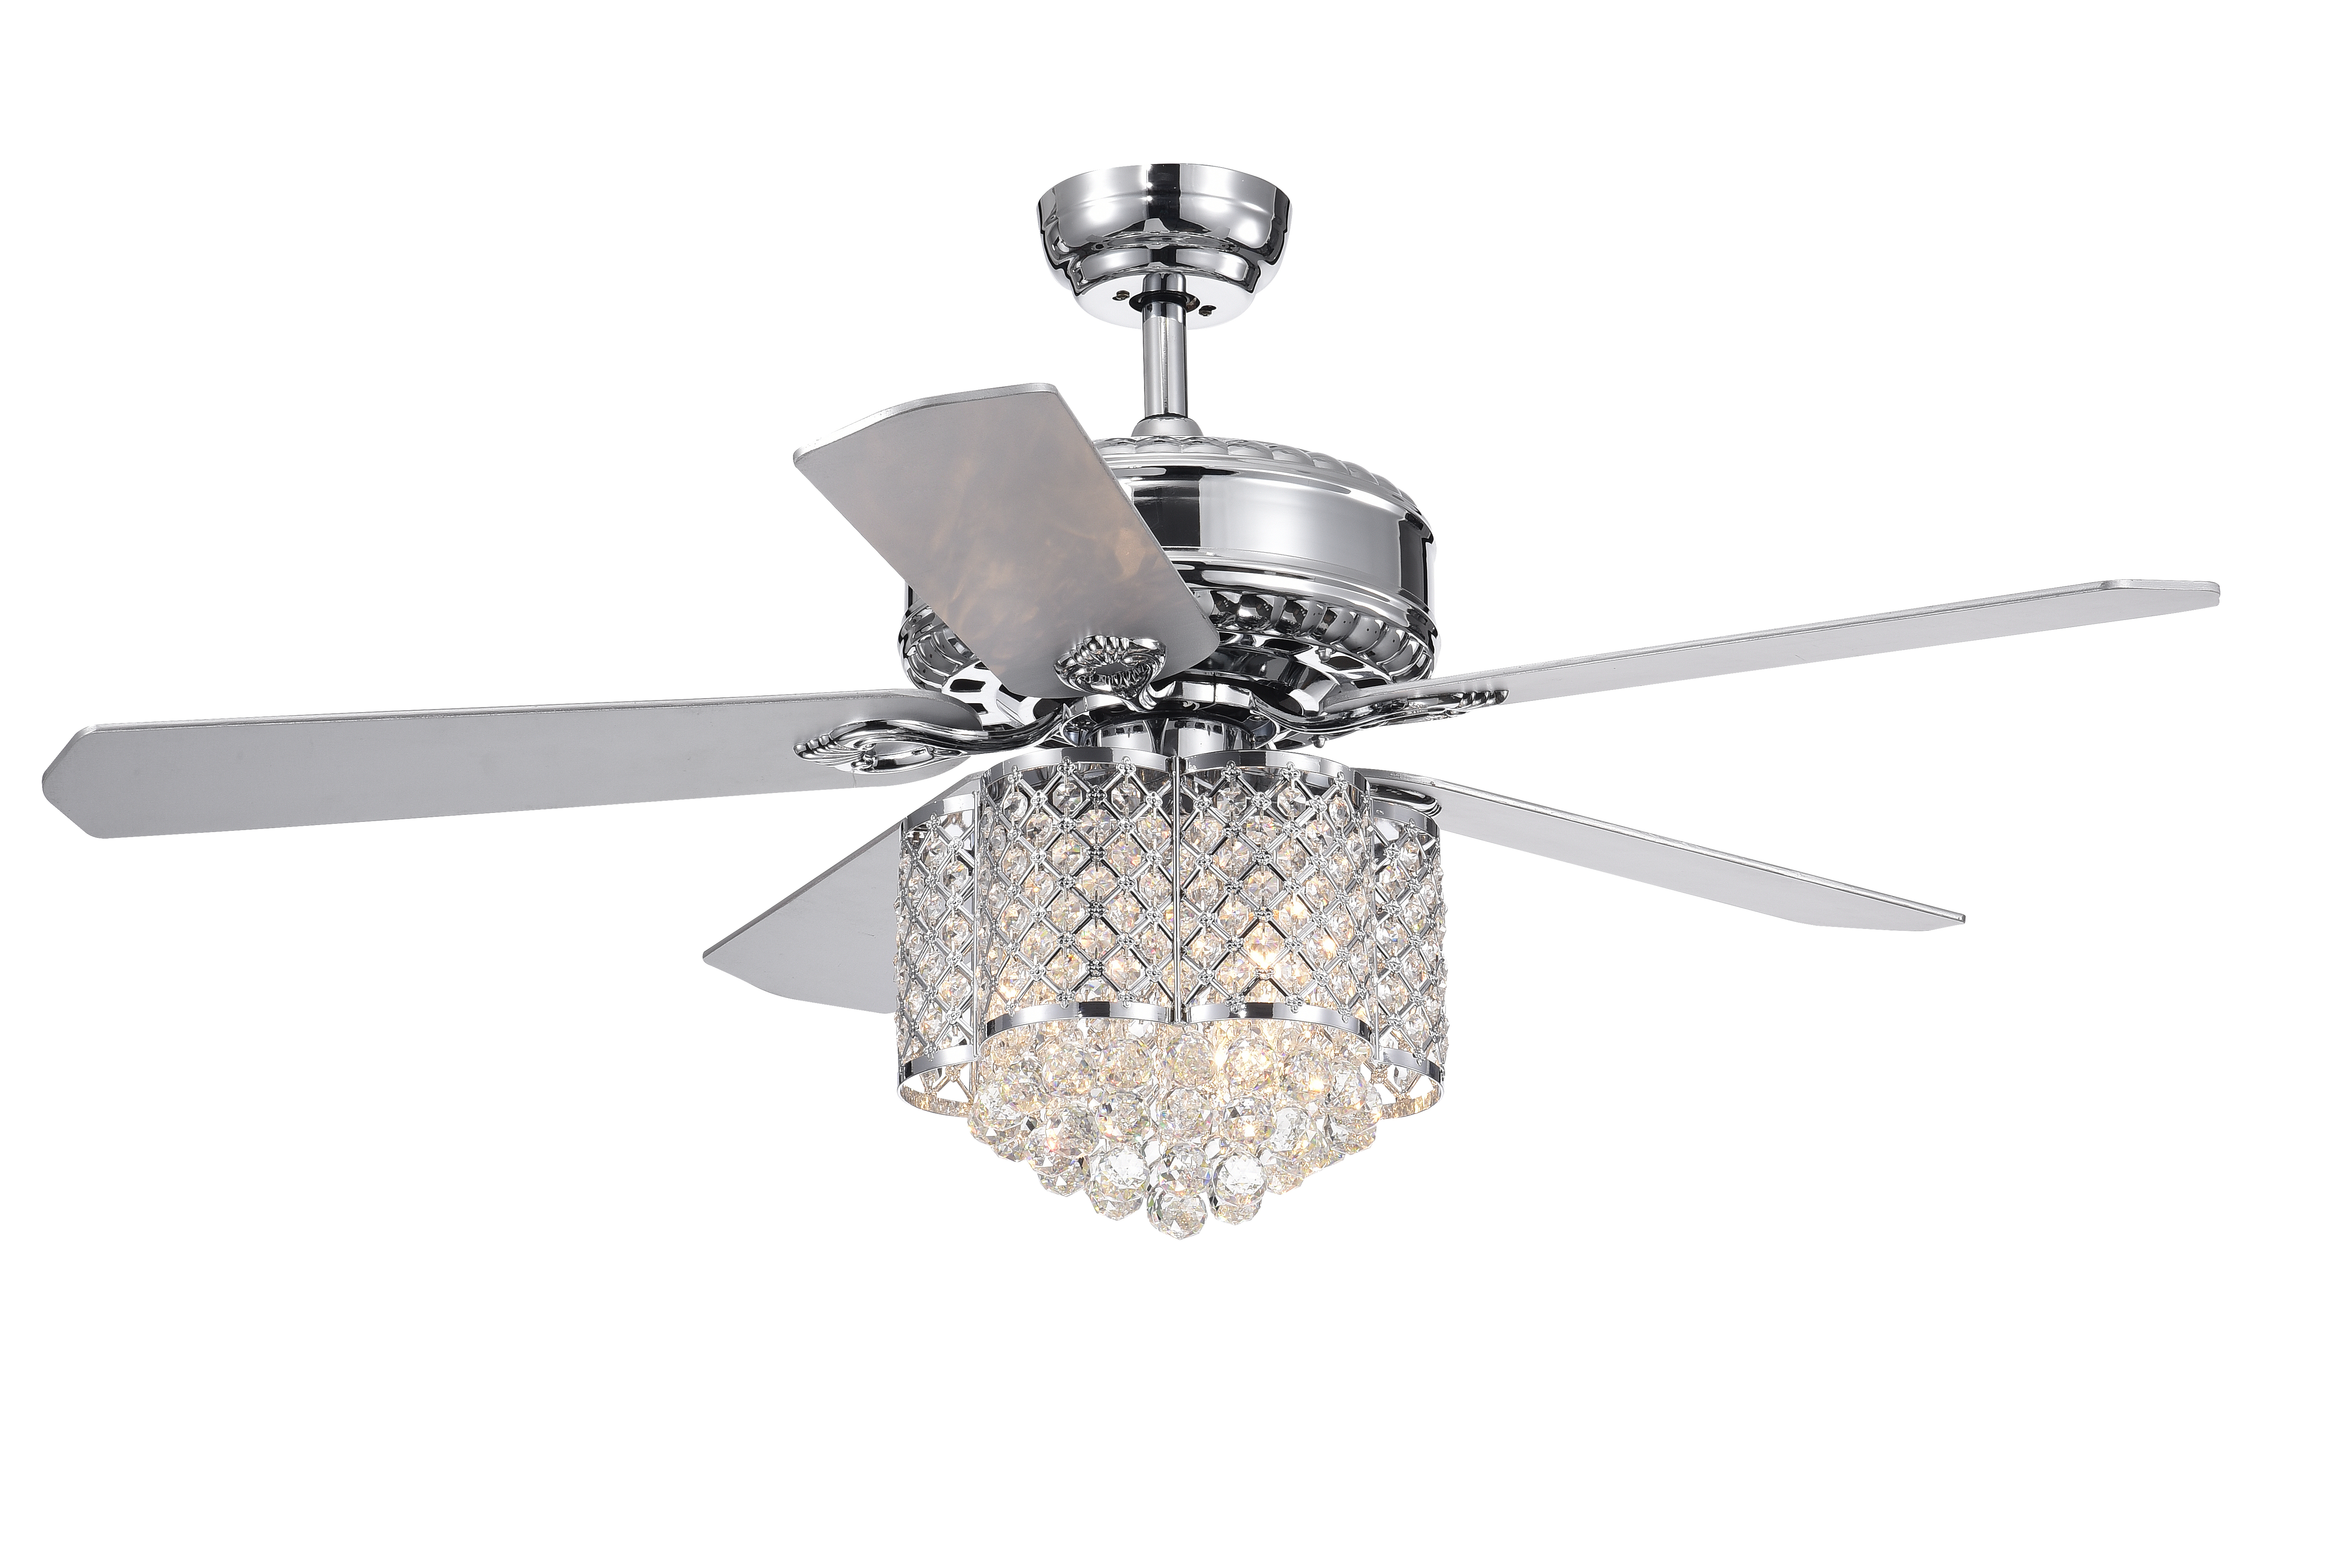 Famous 5 Blade Ceiling Fans With Remote Pertaining To Deidor 5 Blade 52 Inch Chrome Ceiling Fan With 3 Light Crystal Chandelier (remote Controlled) (View 17 of 20)